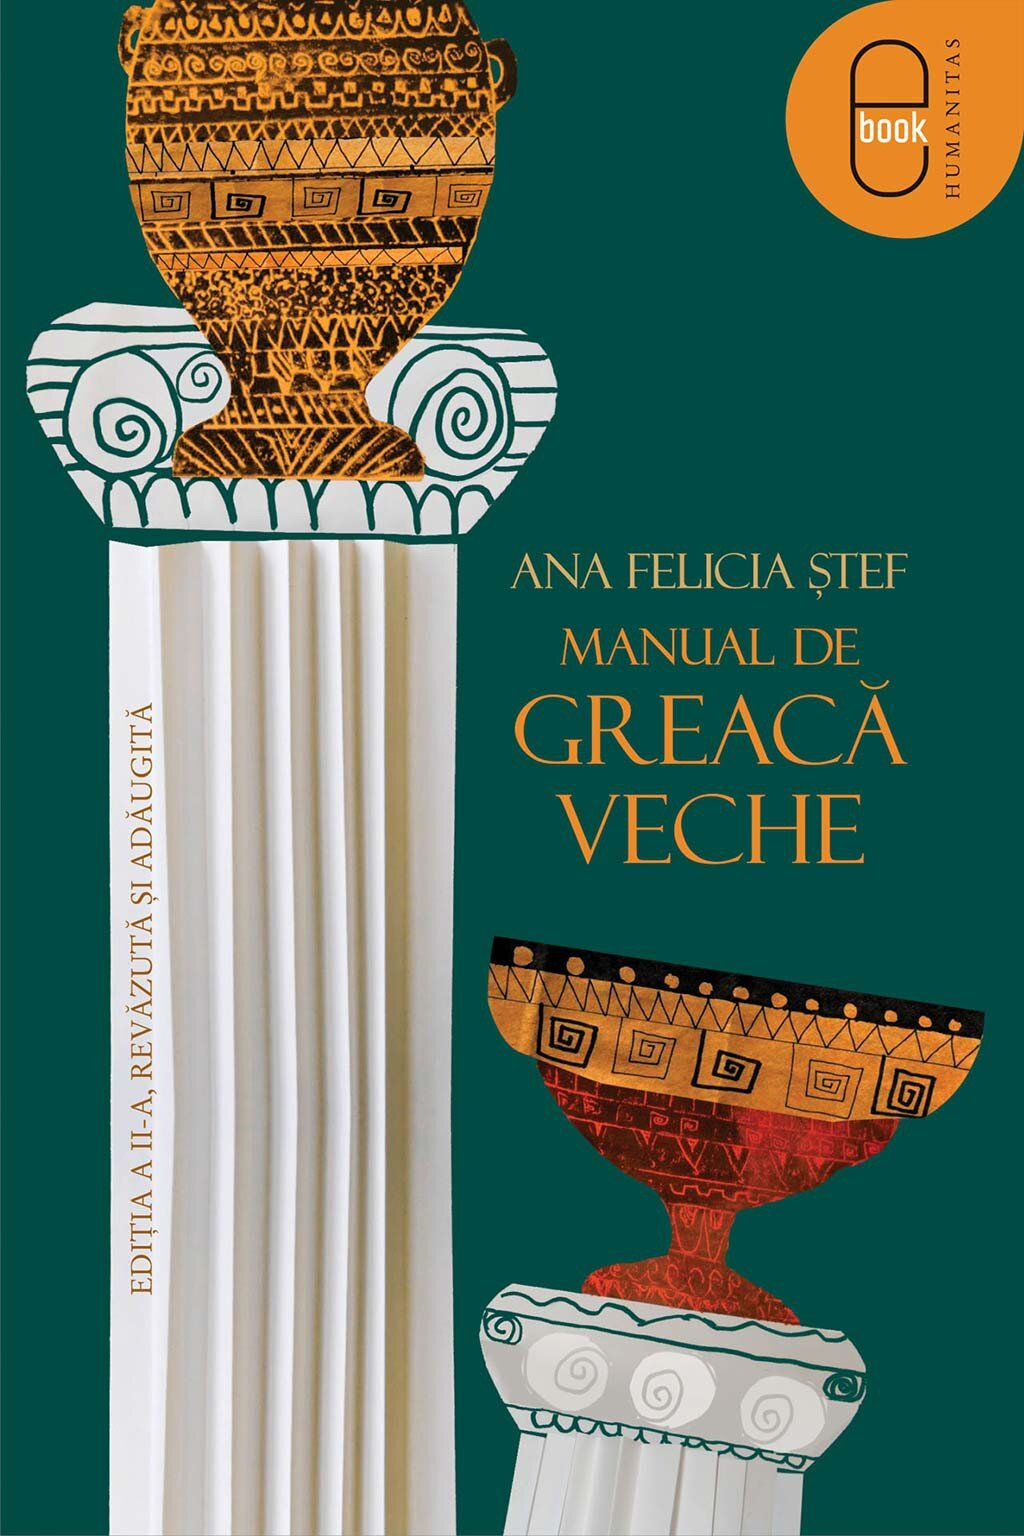 Manual de greaca veche (eBook)